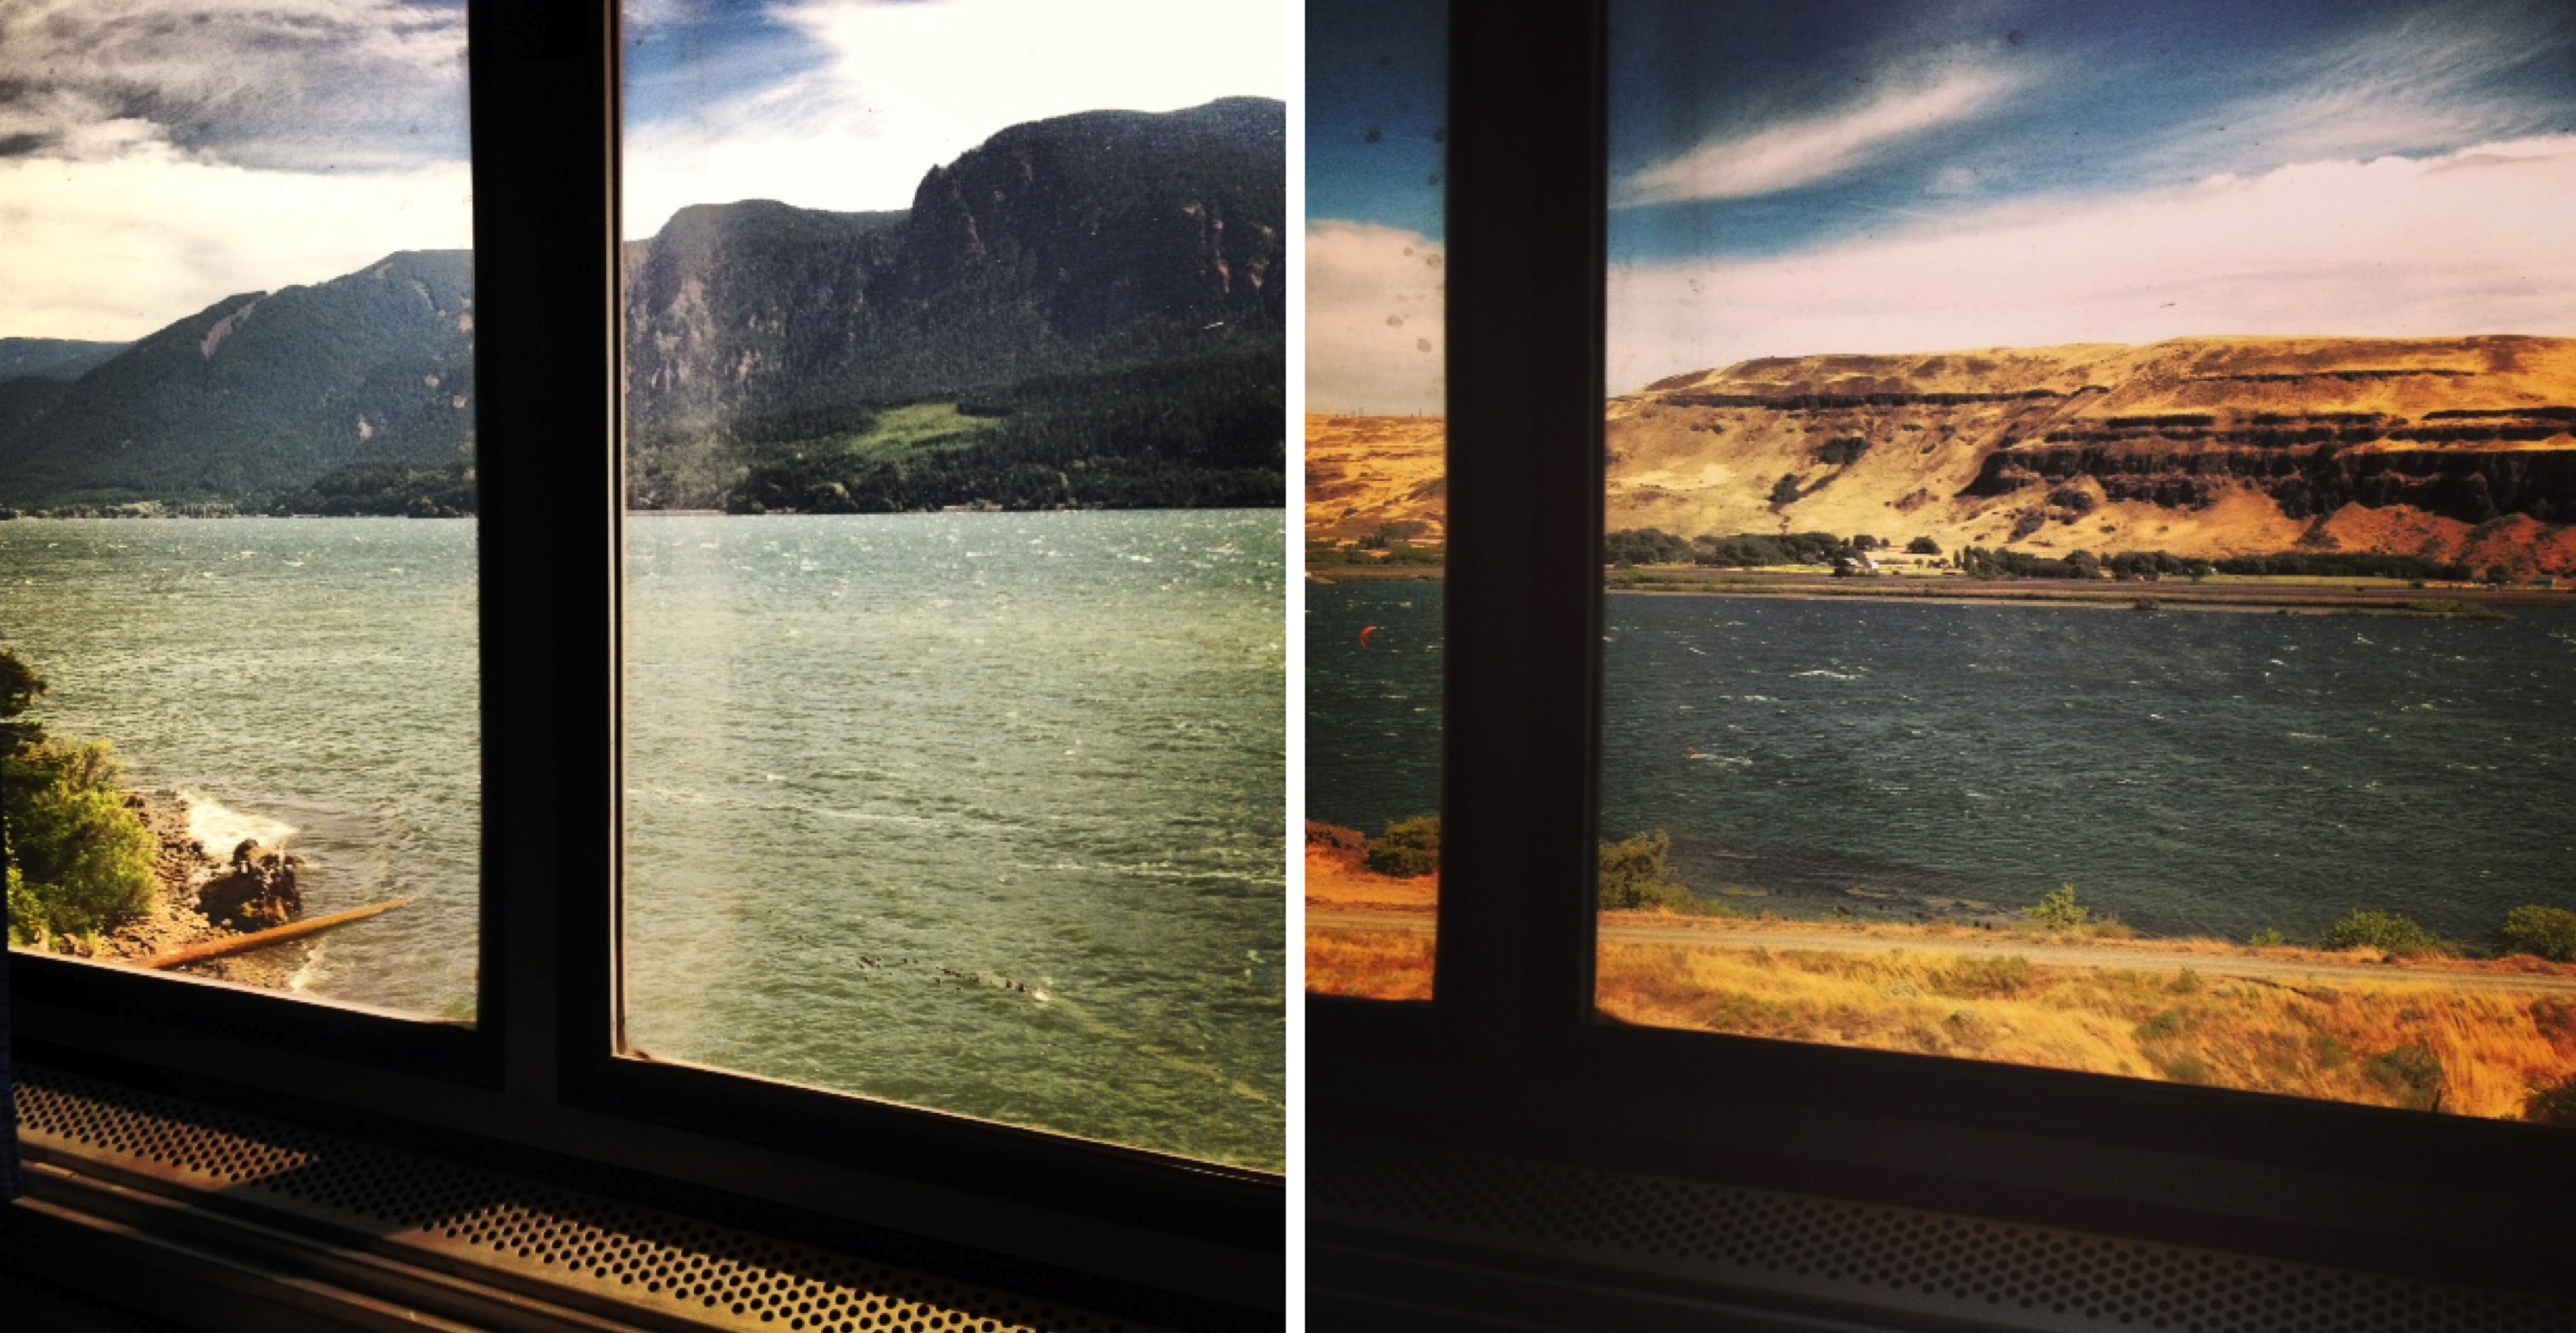 Through the train window, from west (left) to east